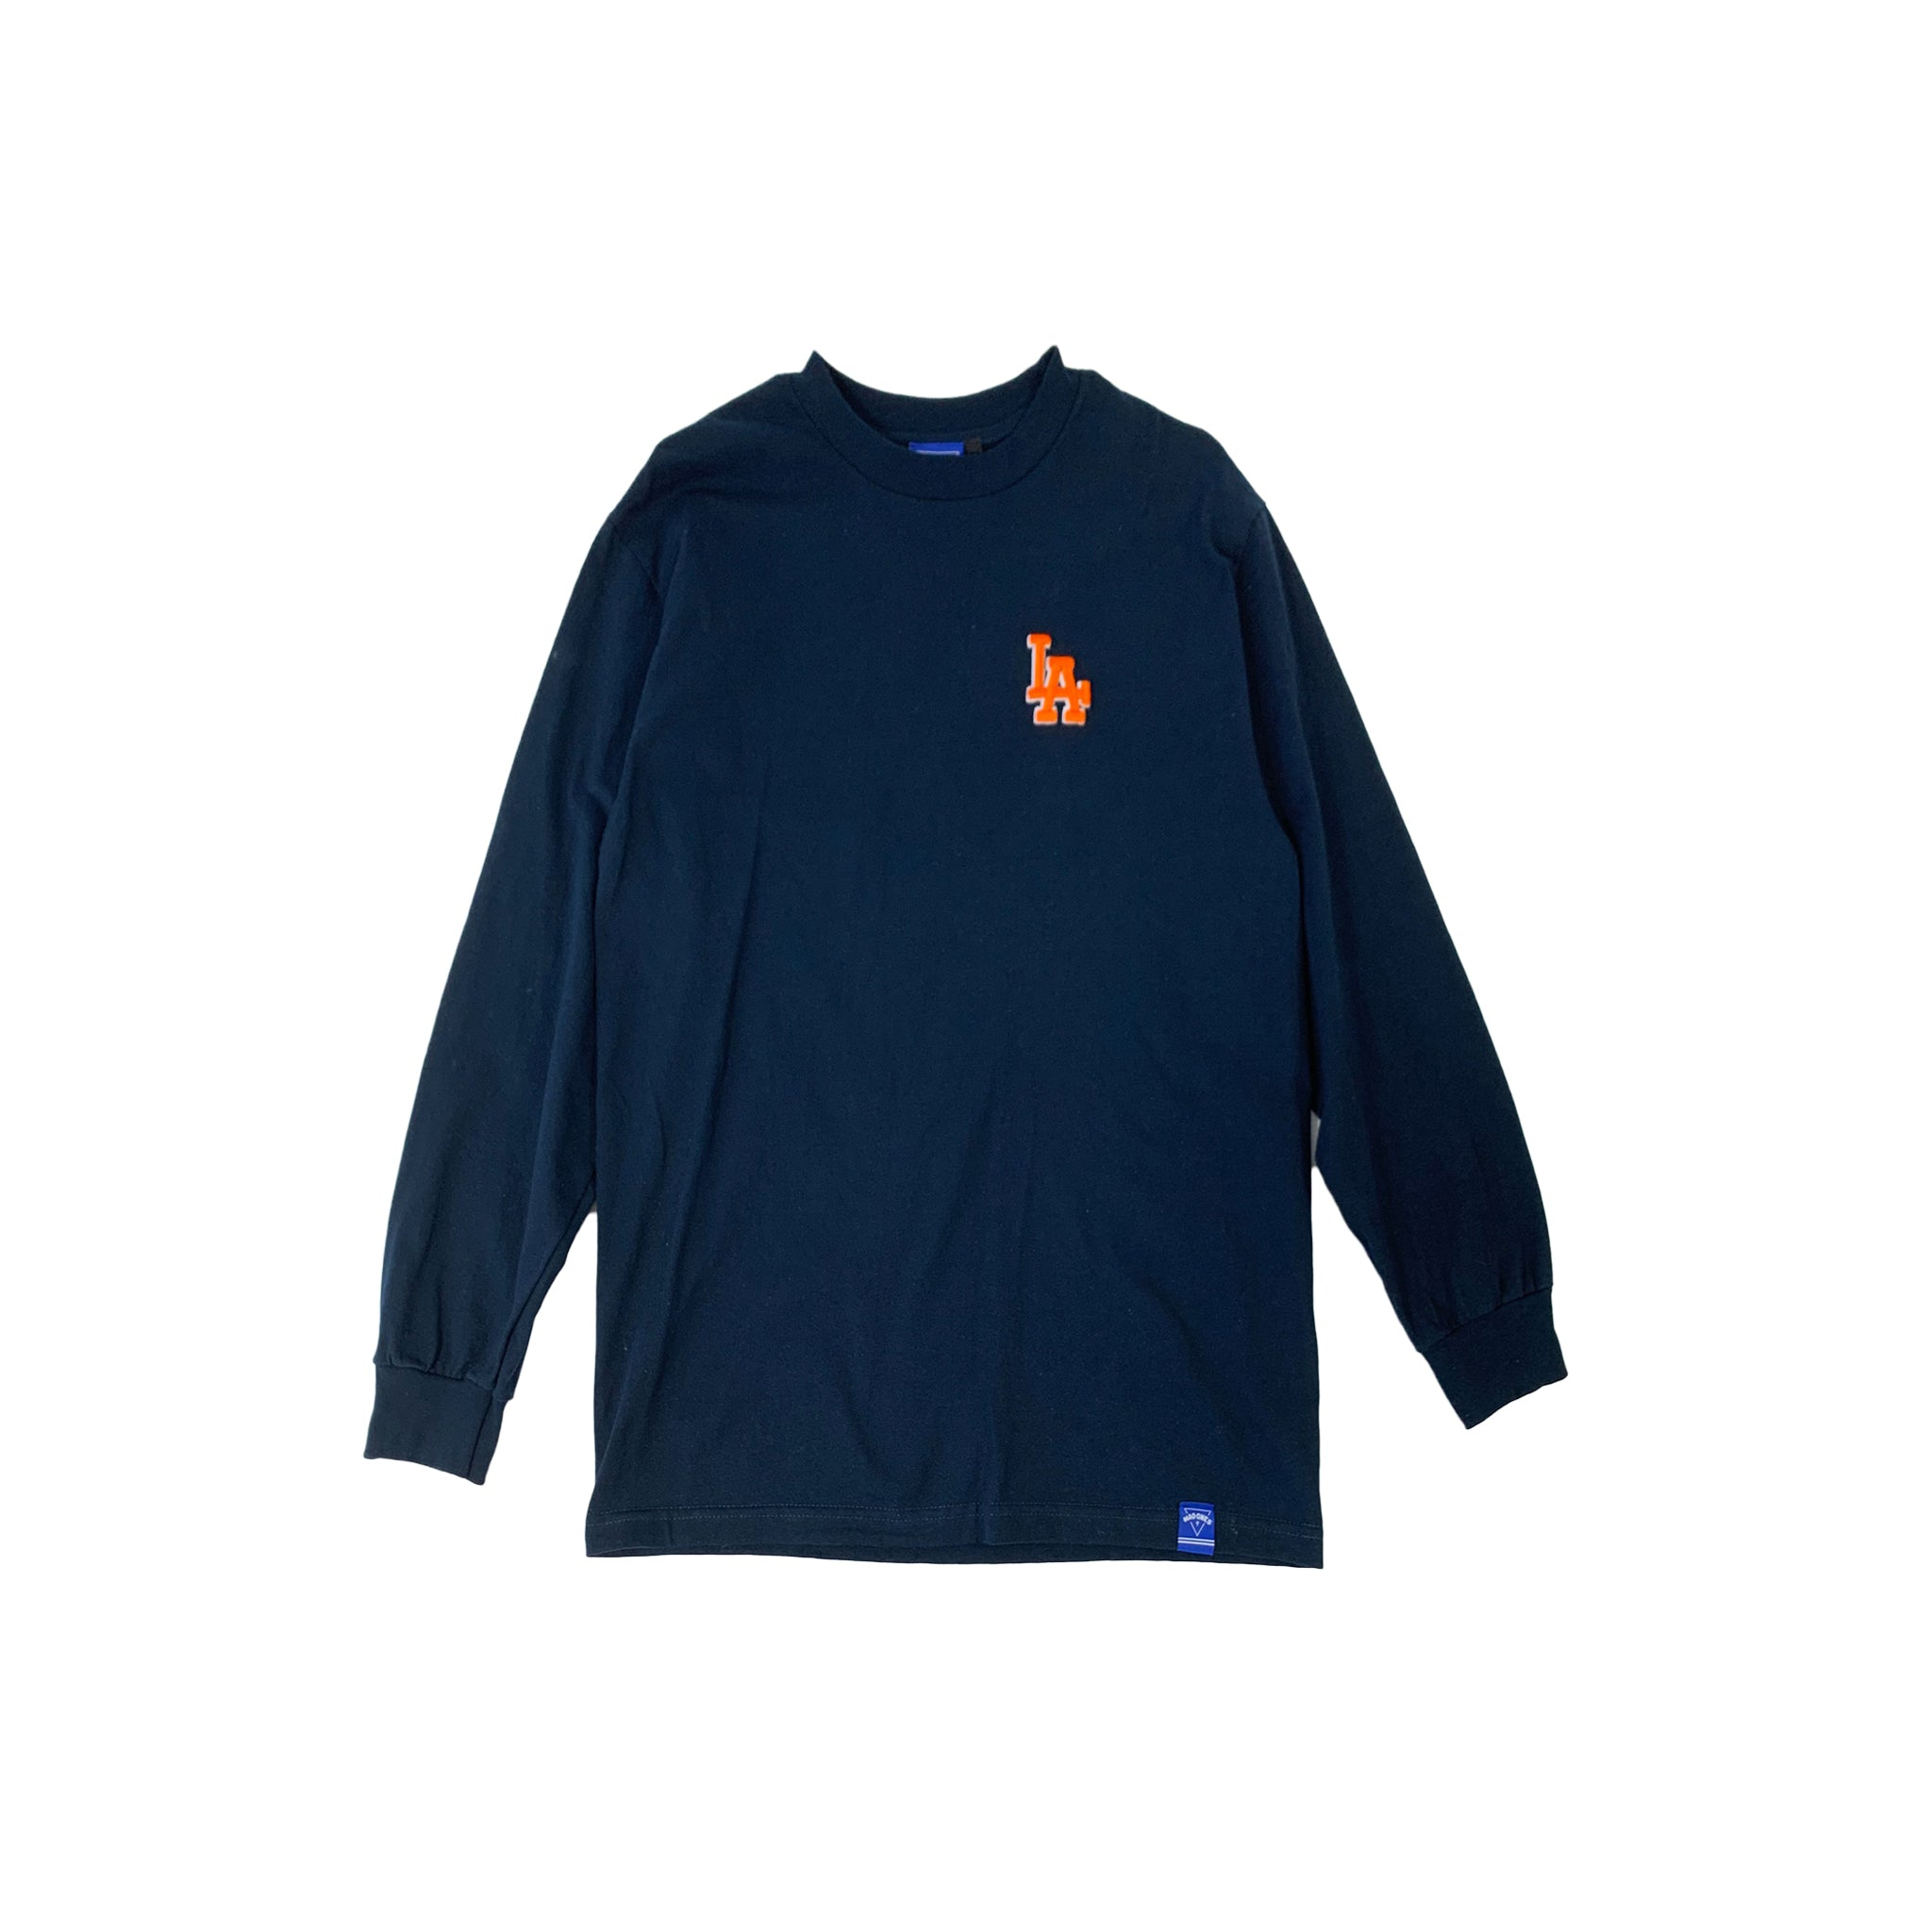 INFLUENTIAL - L/S - NAVY